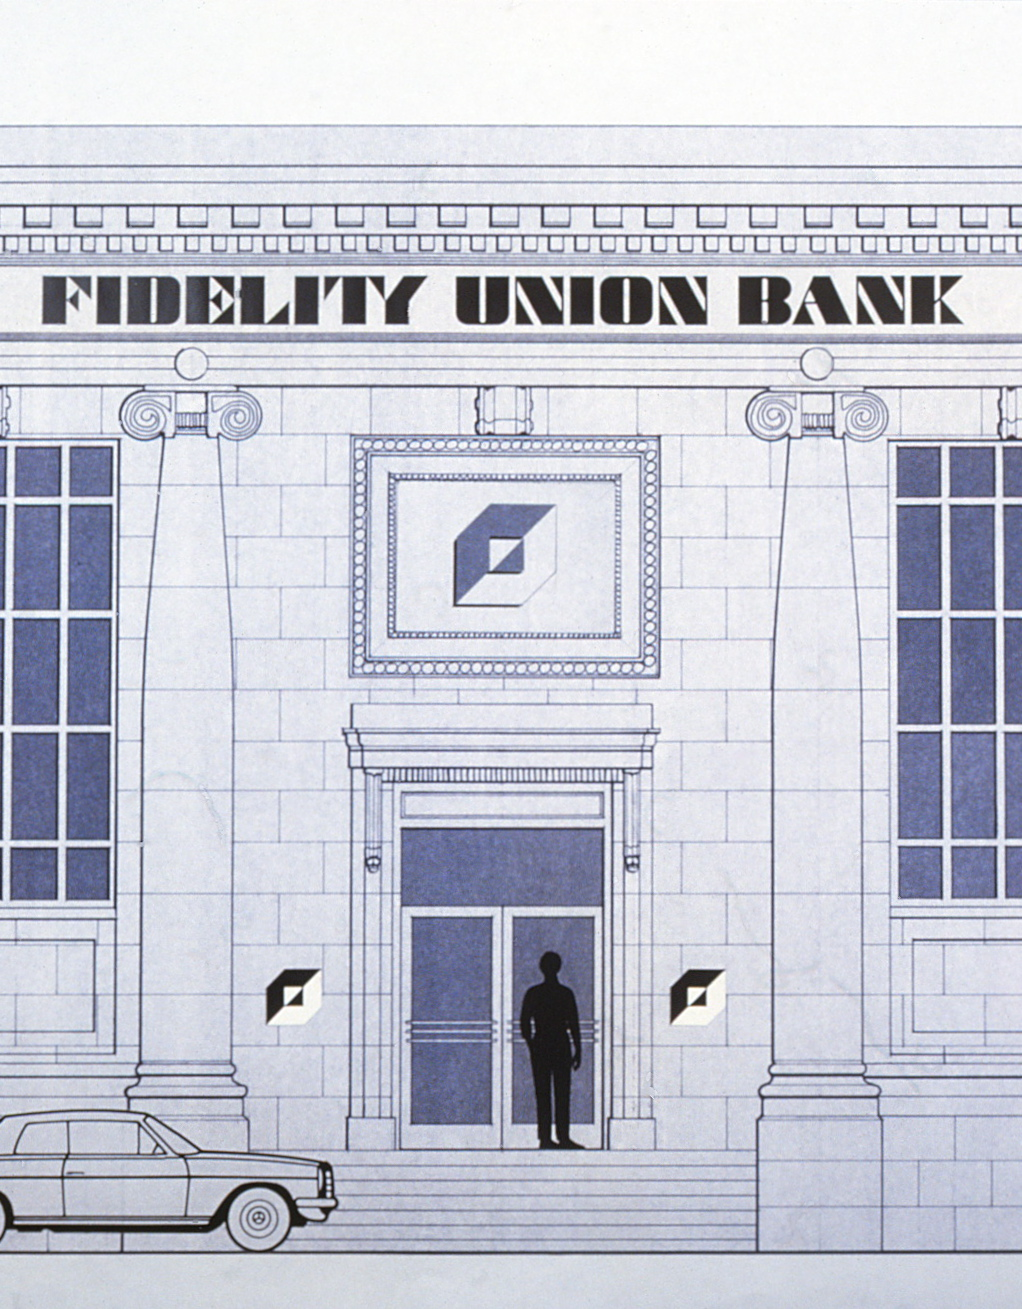 Closeup drawing of how the logo and typeface would look on the bank branch building.